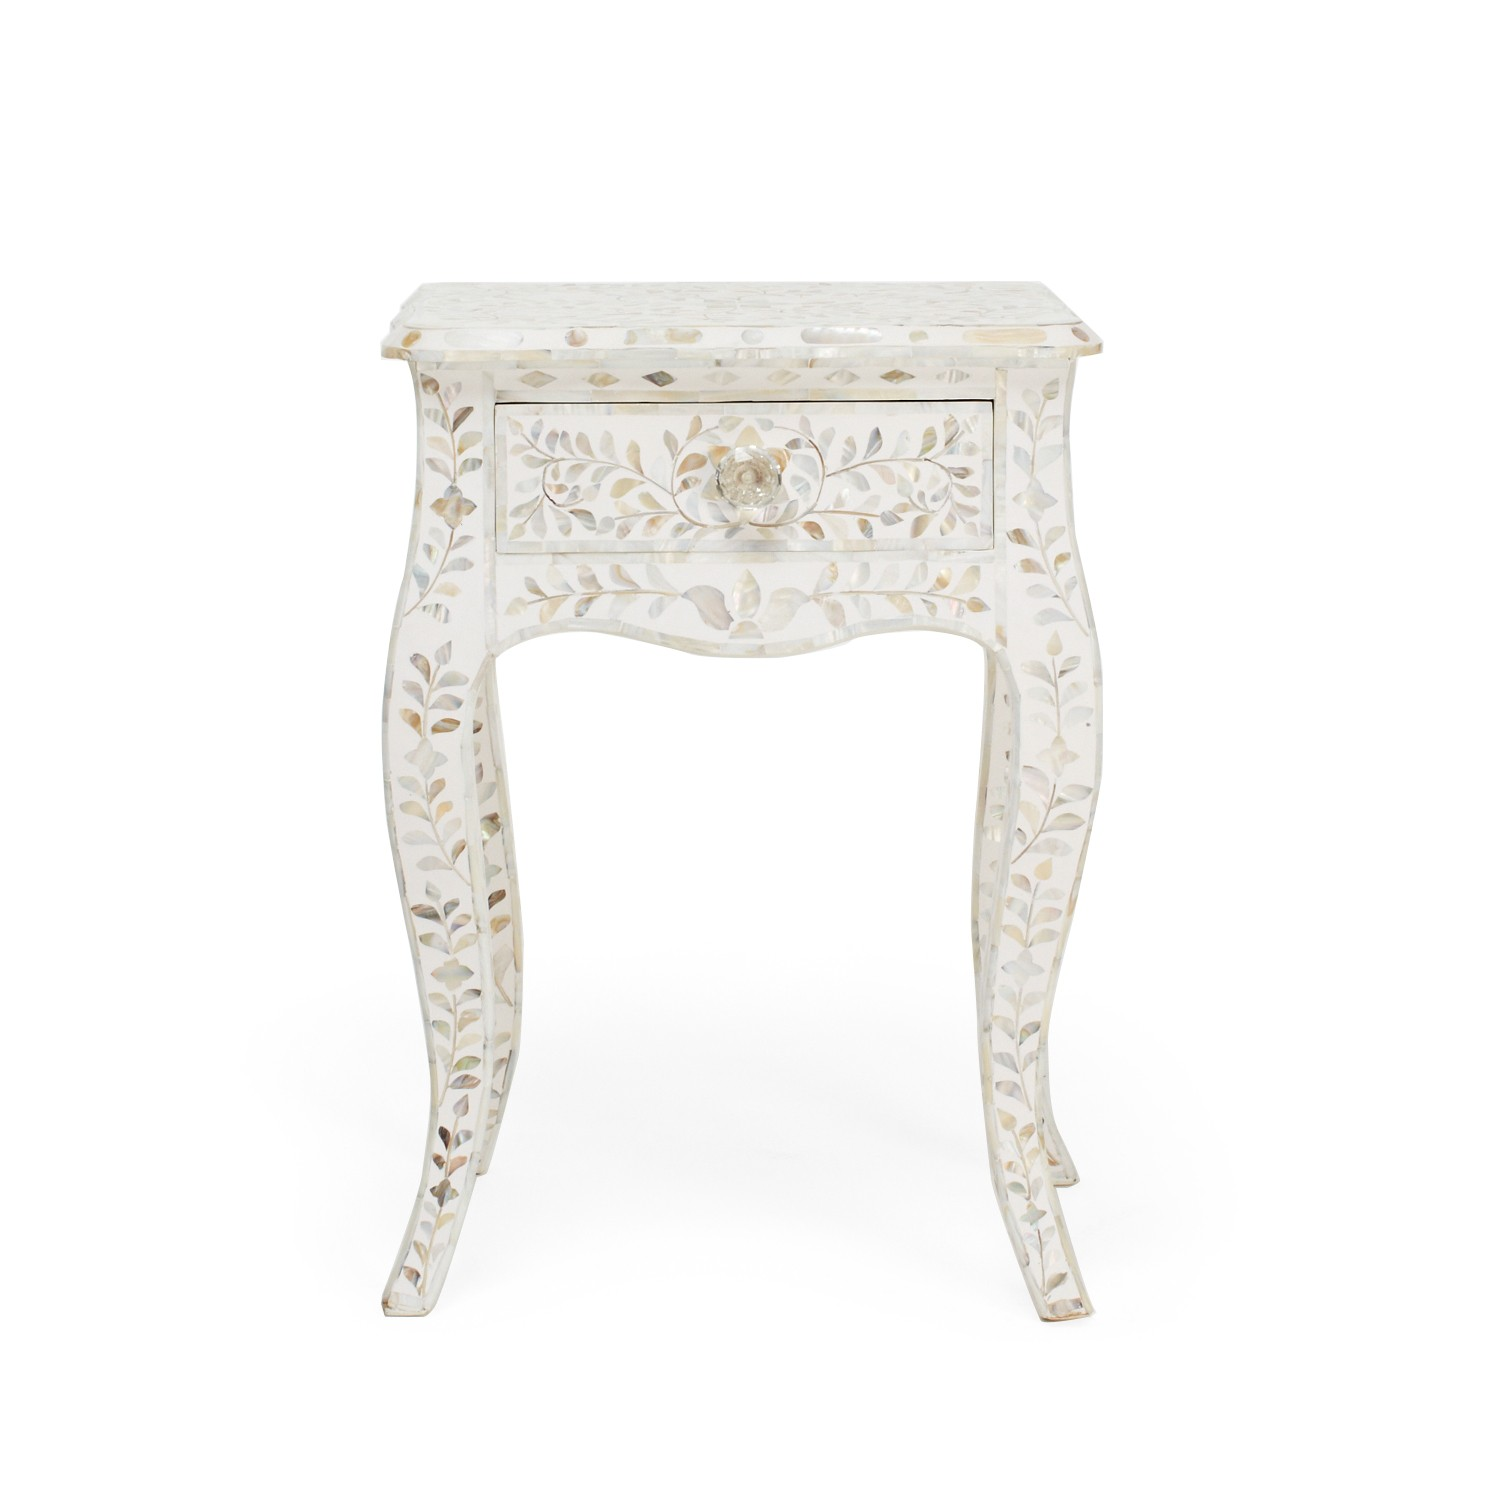 mother pearl side table white carpet home emerald green accent women shoe conversion west elm rocking chair round garden coffee threshold owings hot water heater tablecloth for